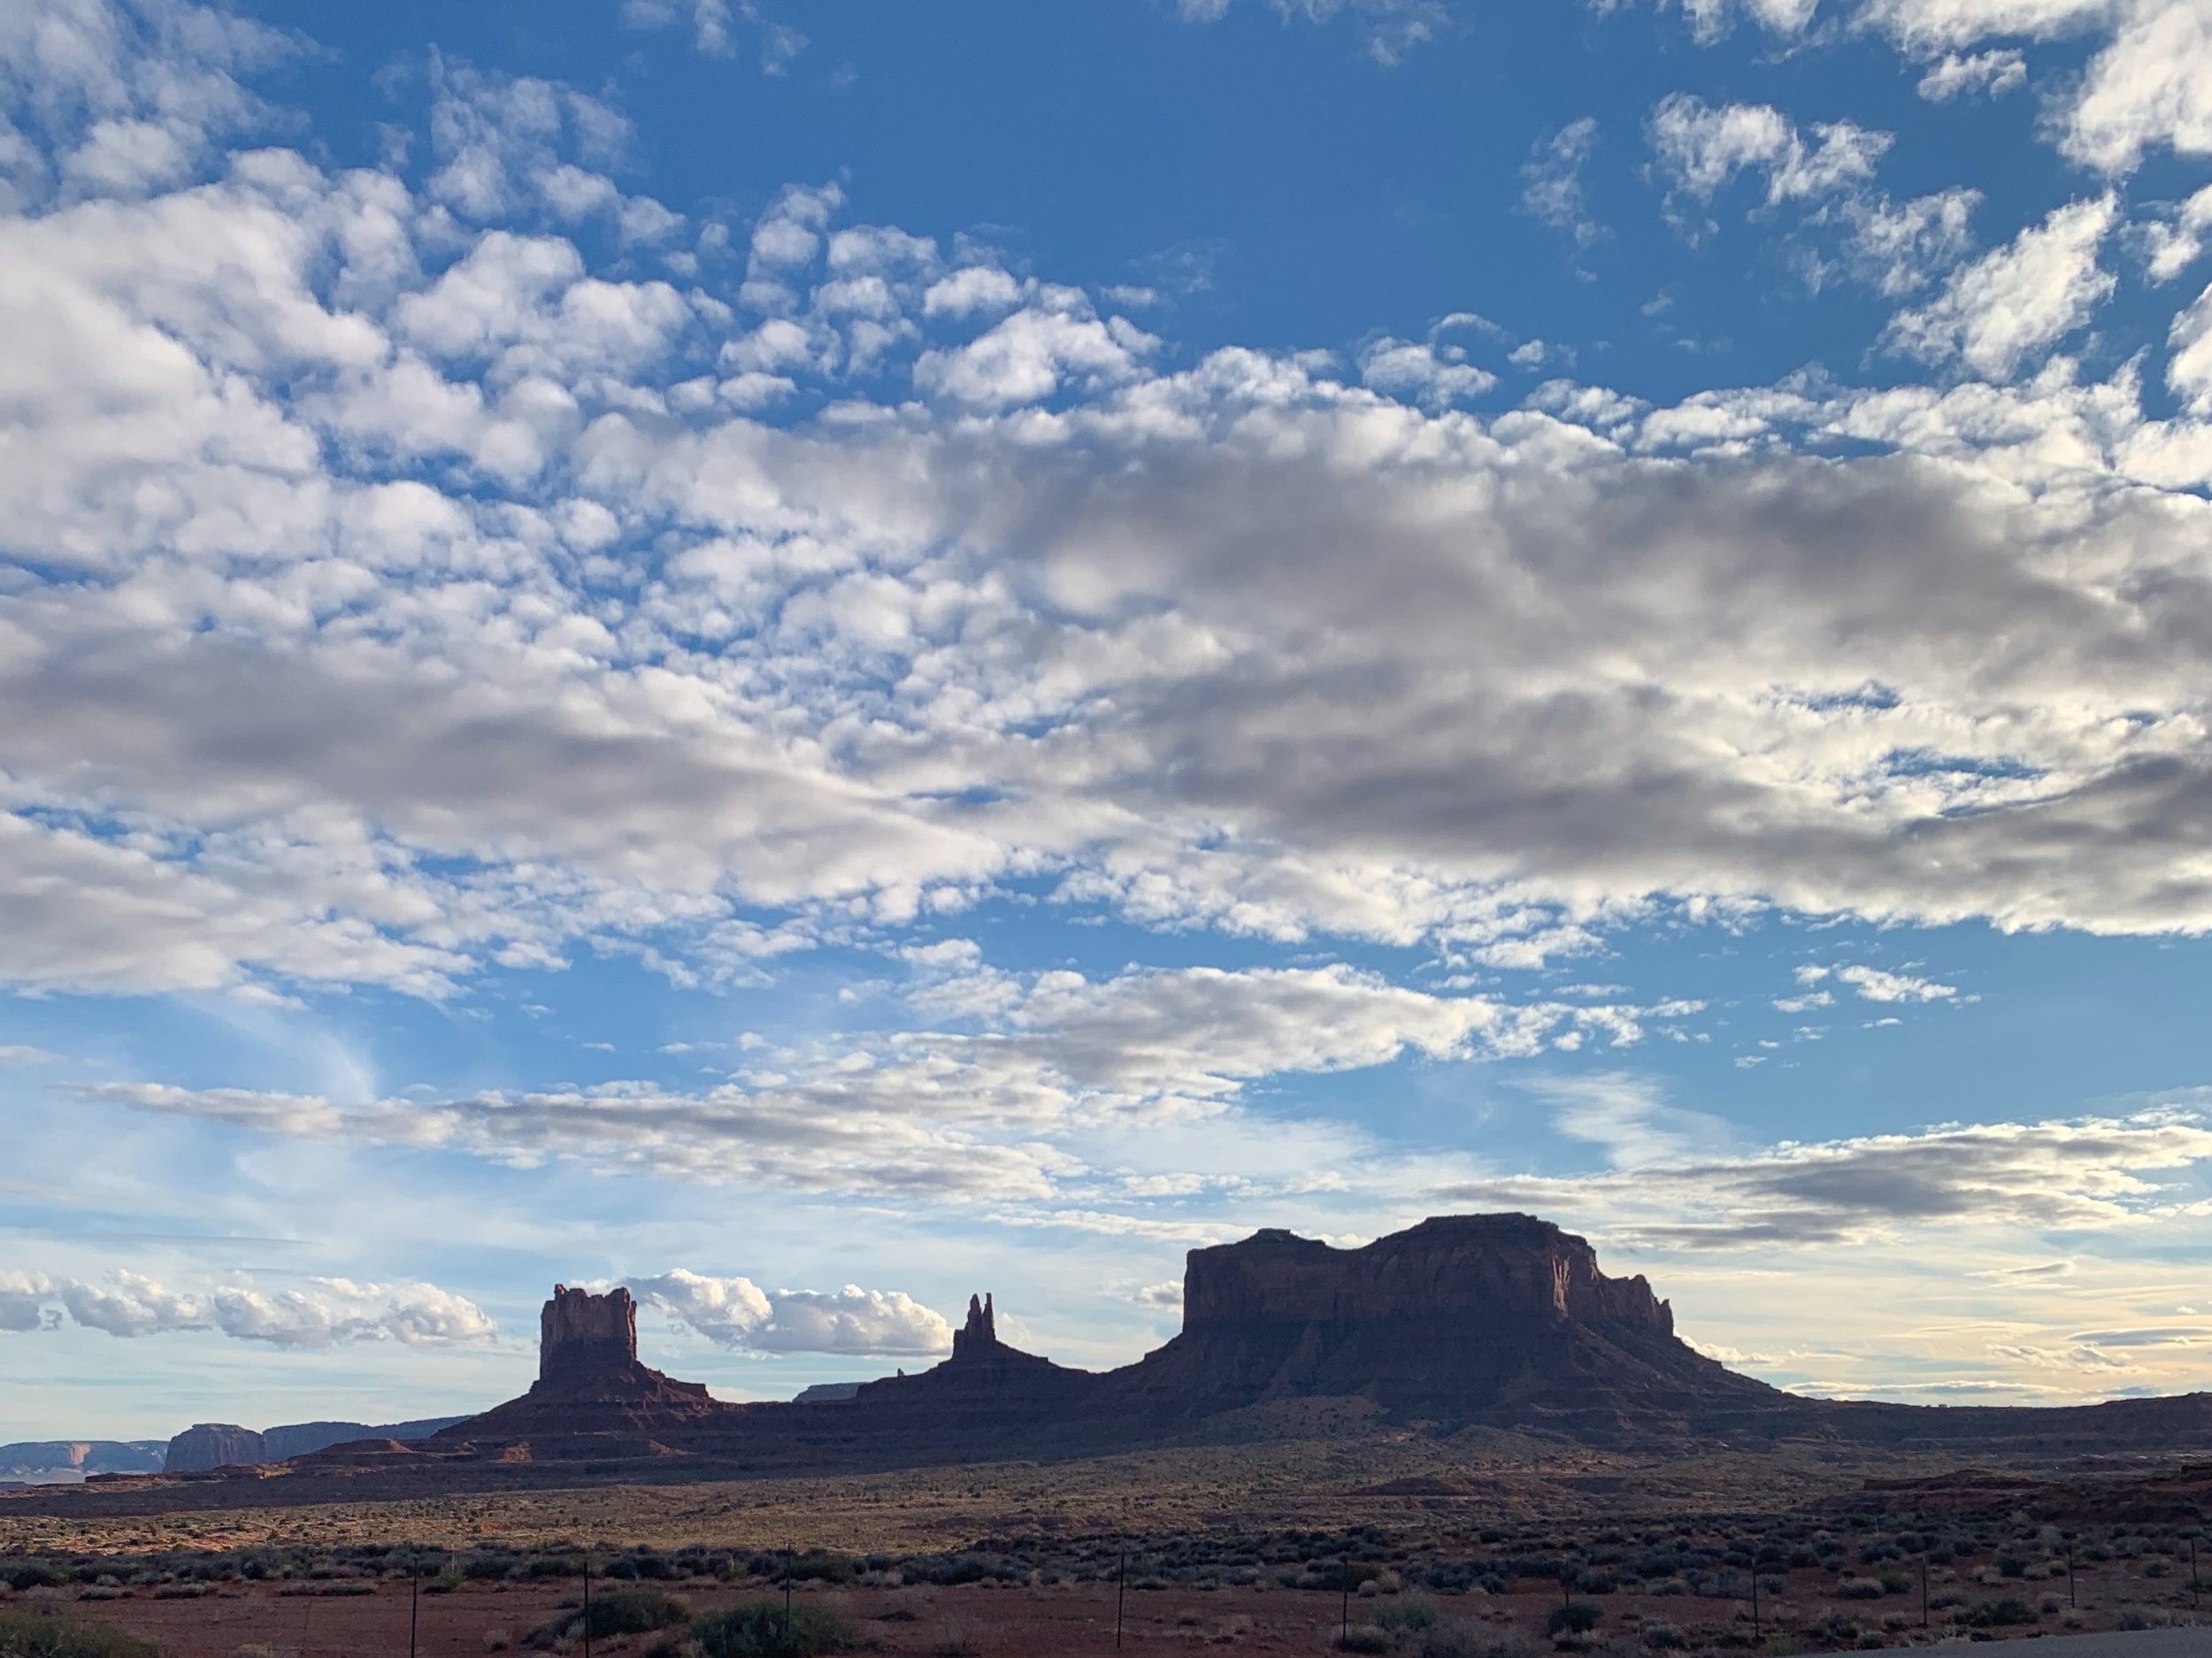 Monument Valley from afar